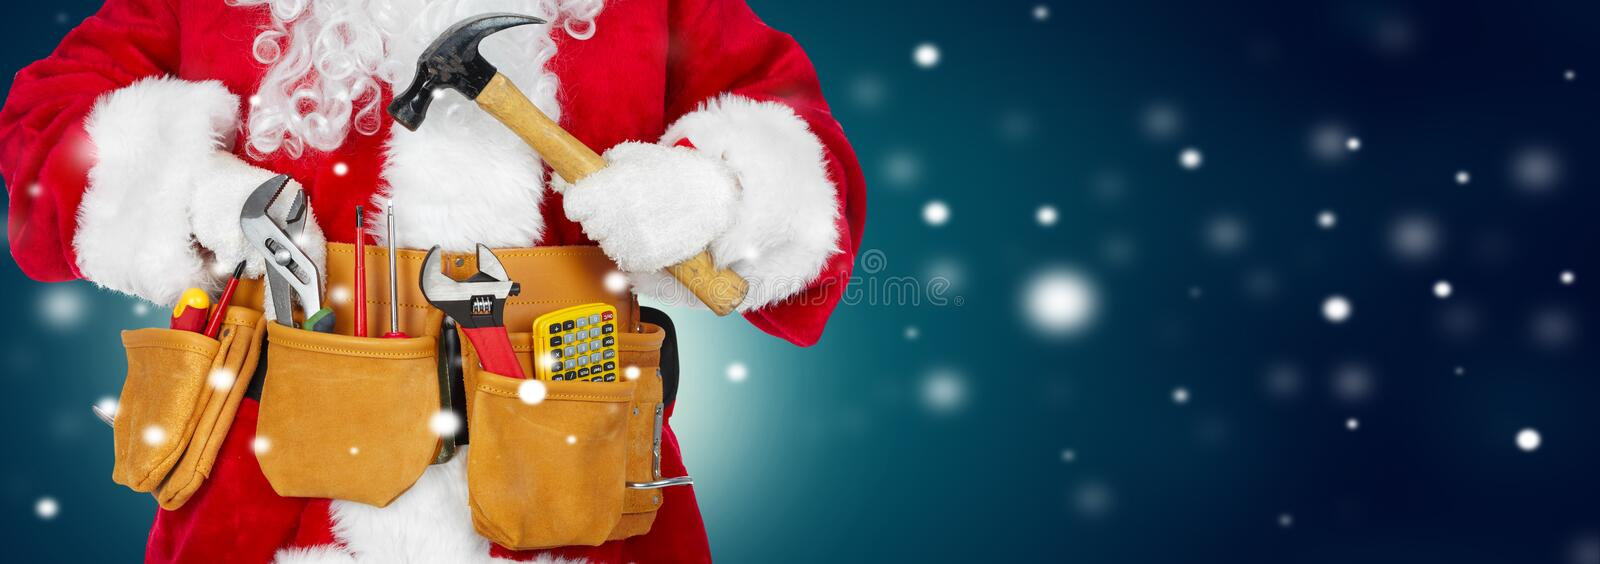 Santa Claus with a tool belt on winter background stock images